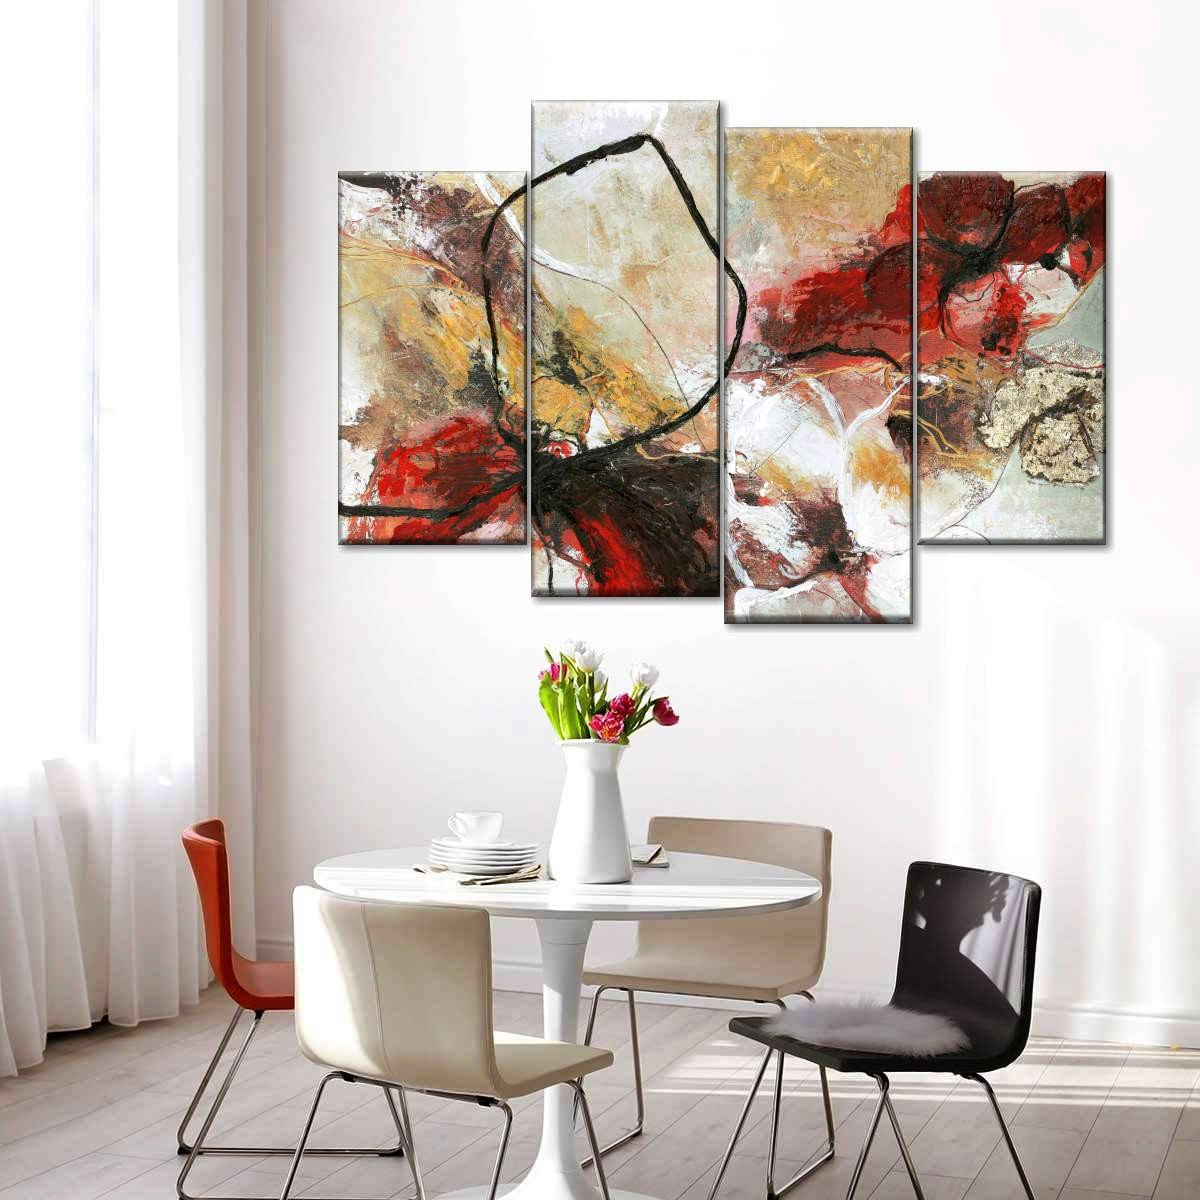 image - Give Your Home a Brand-New Look with Wall Art